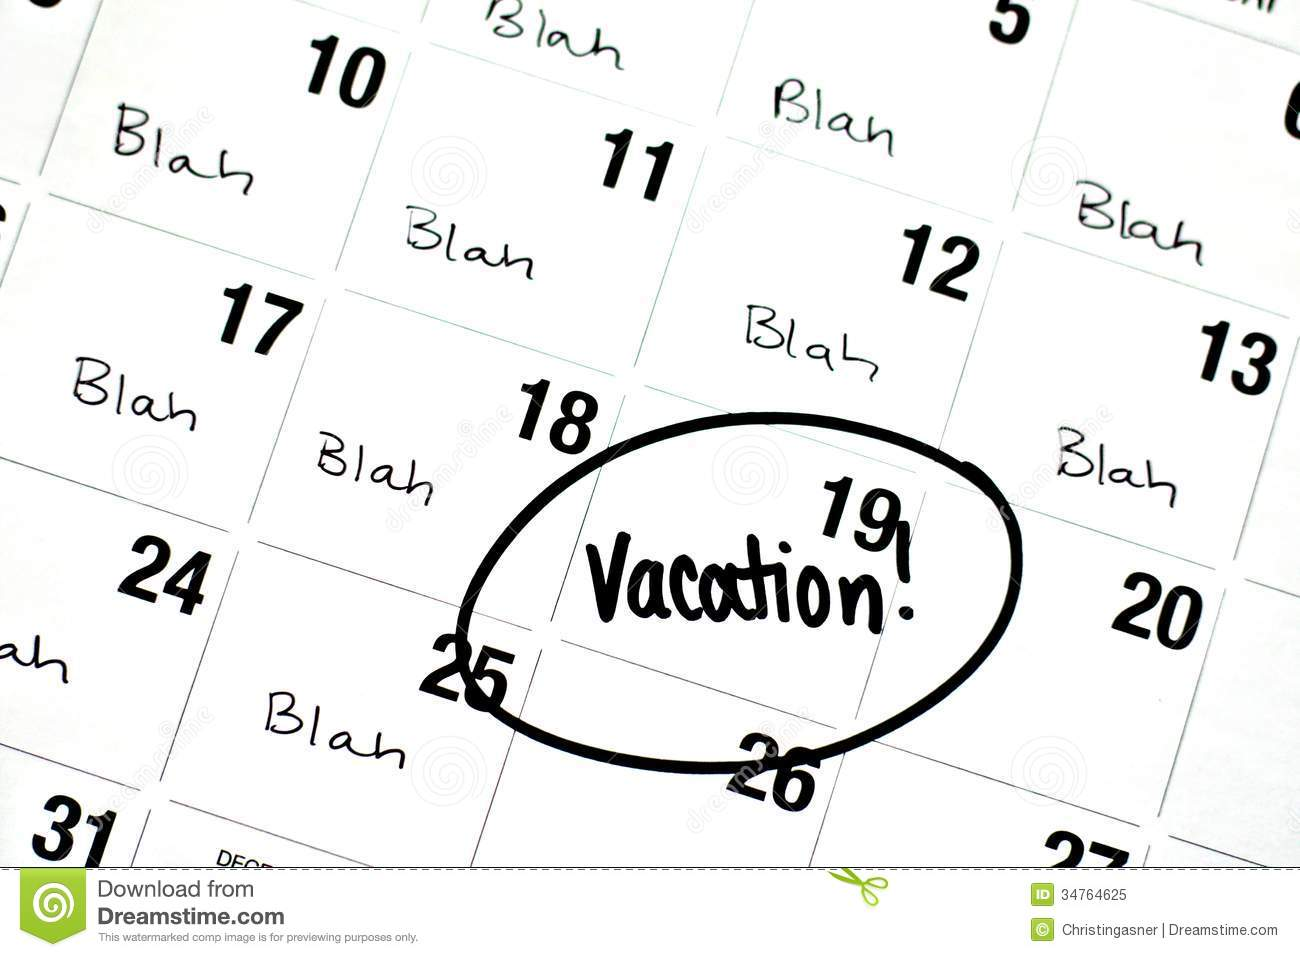 The Word Vacation Is Written And Circled On A Calendar